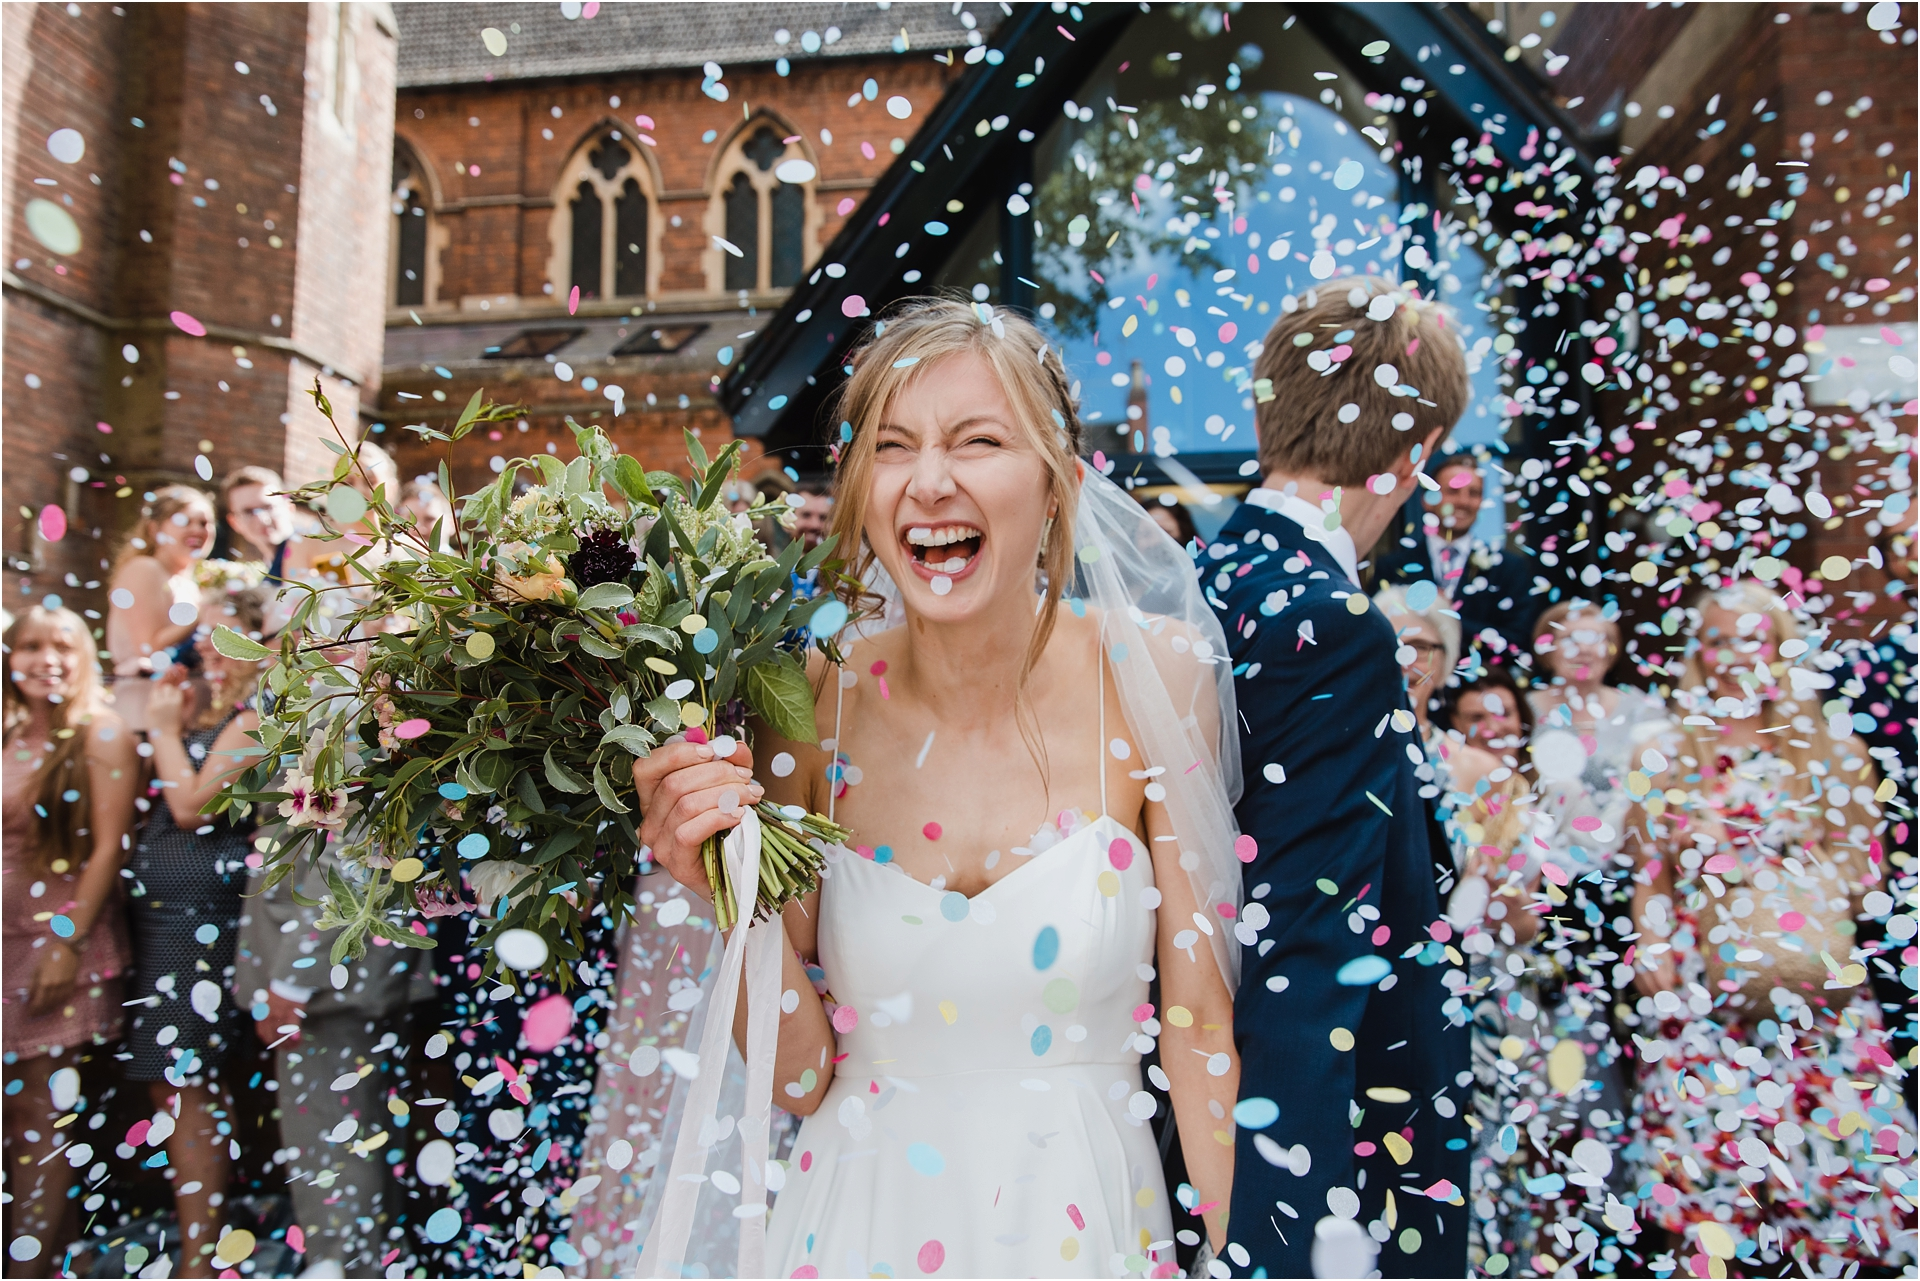 the perfect confetti photograph?